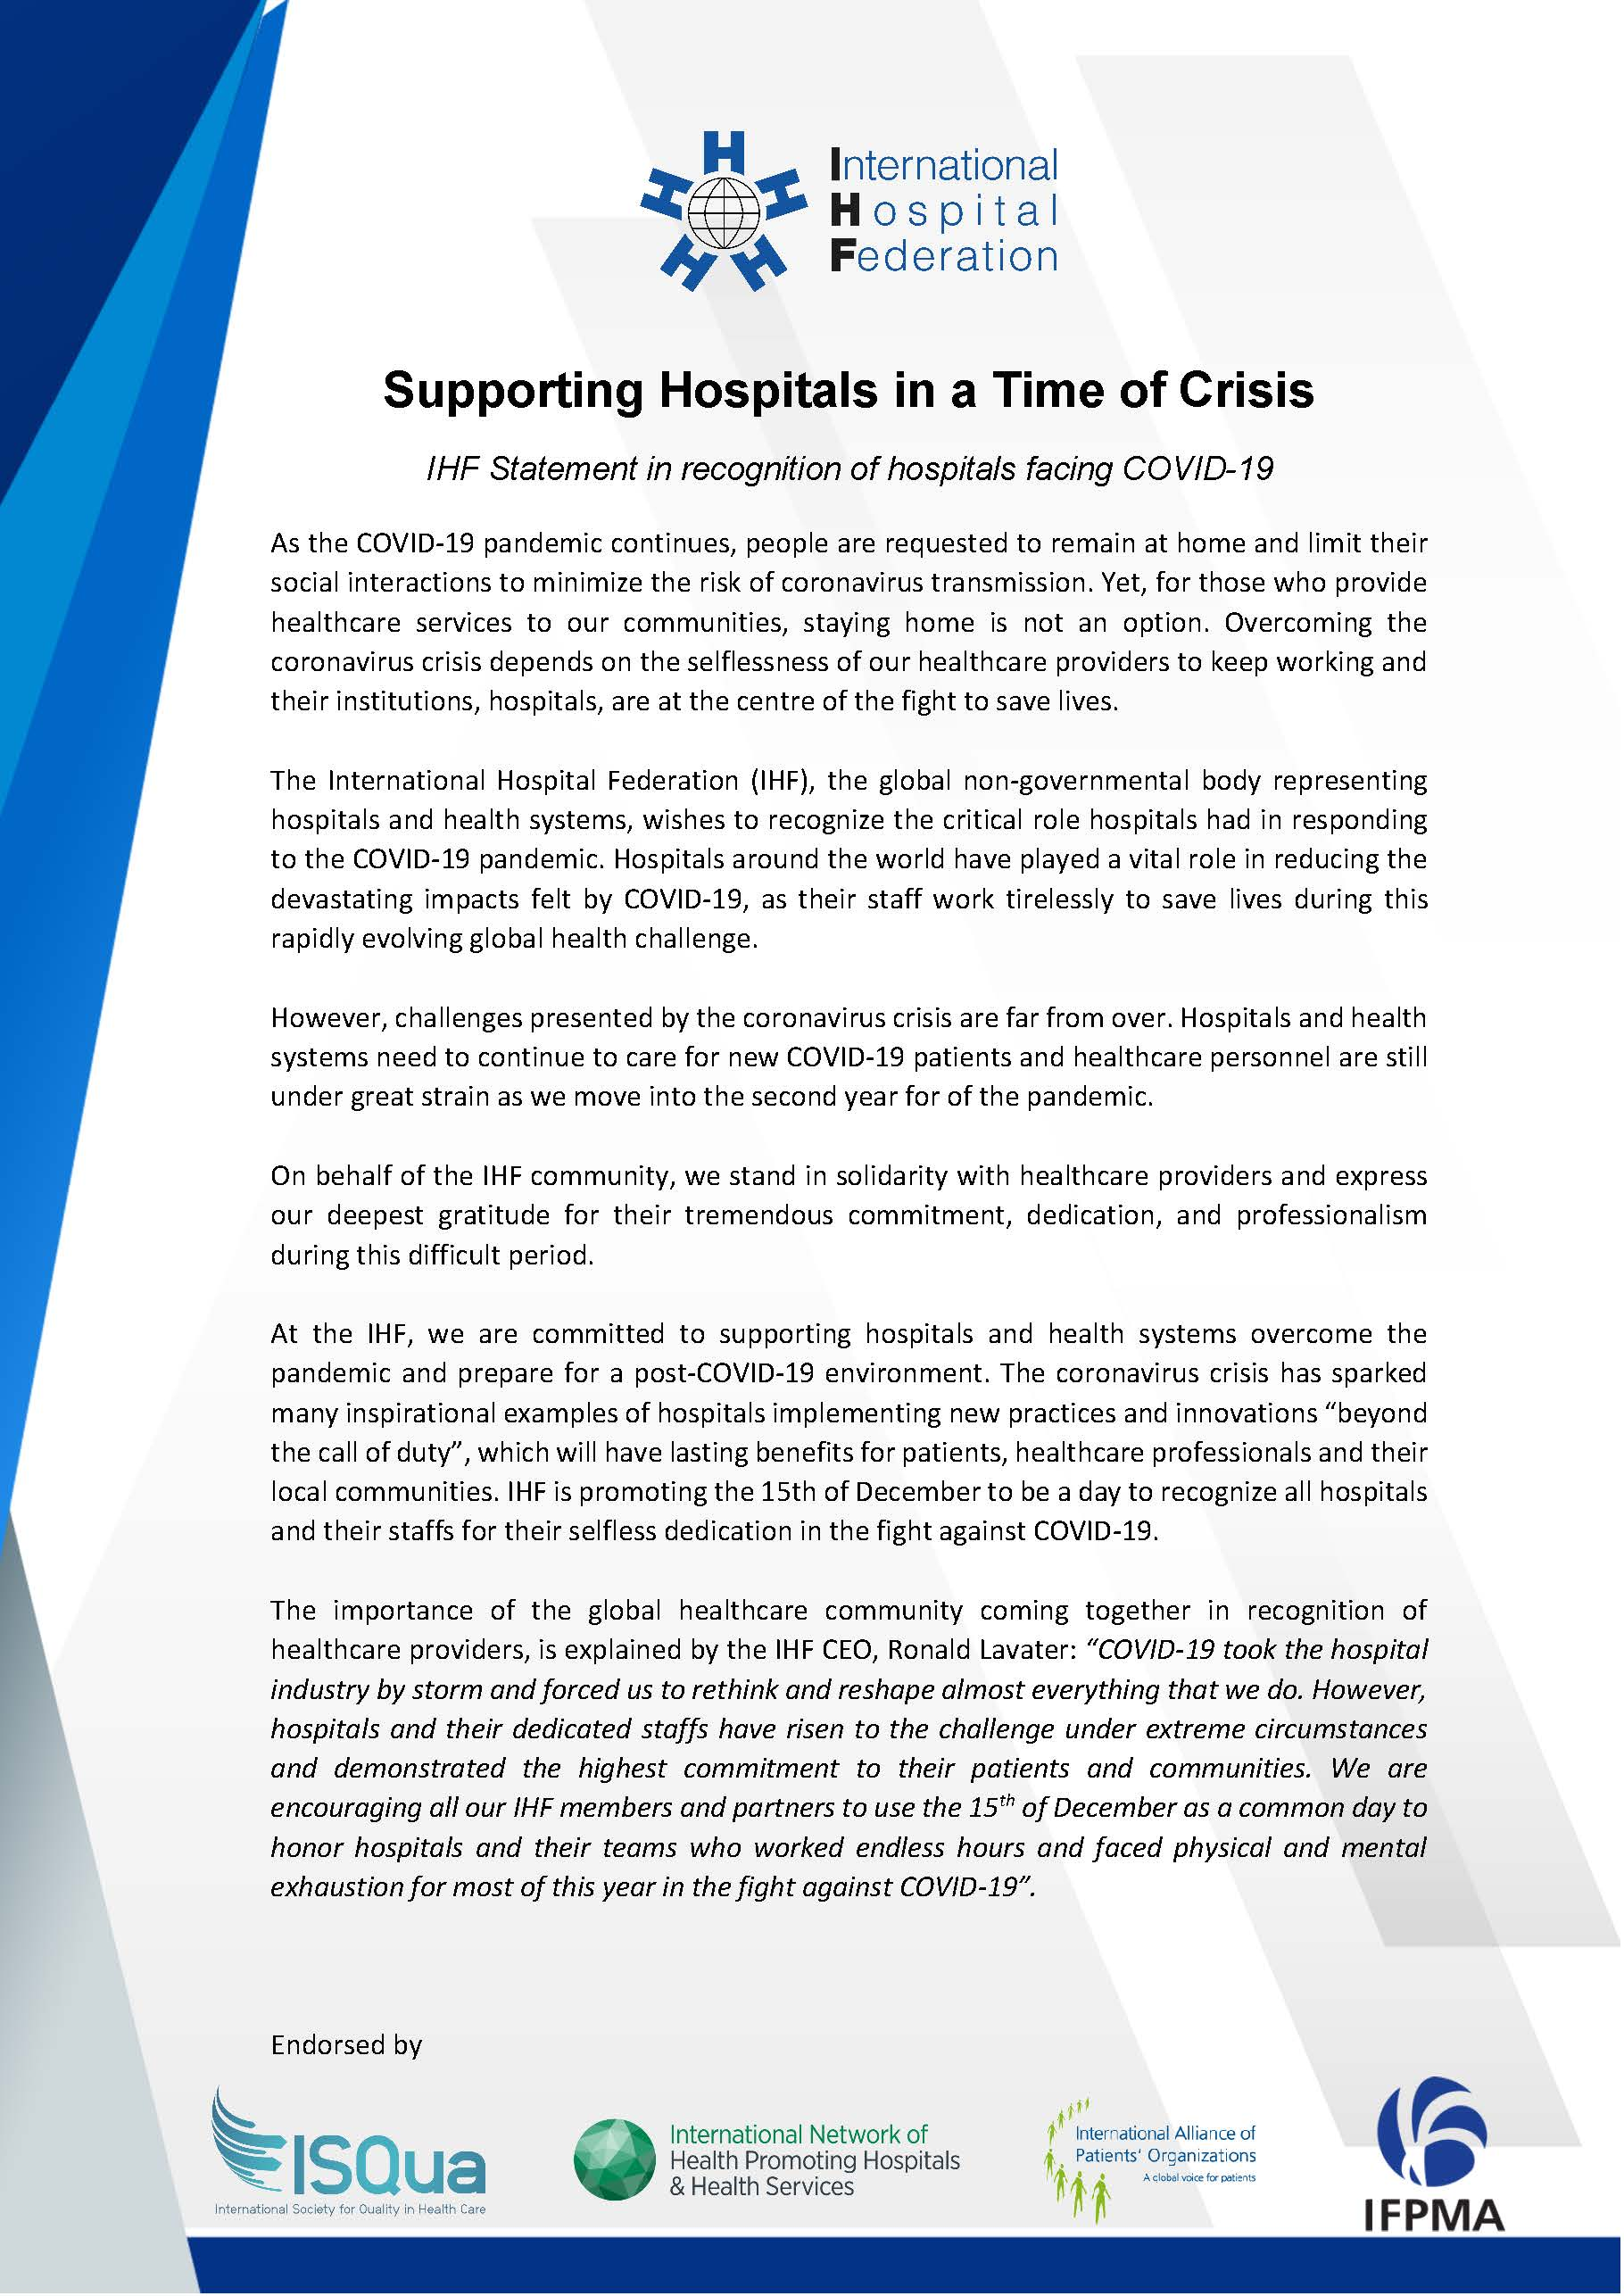 Recognition of Hospitals Statement